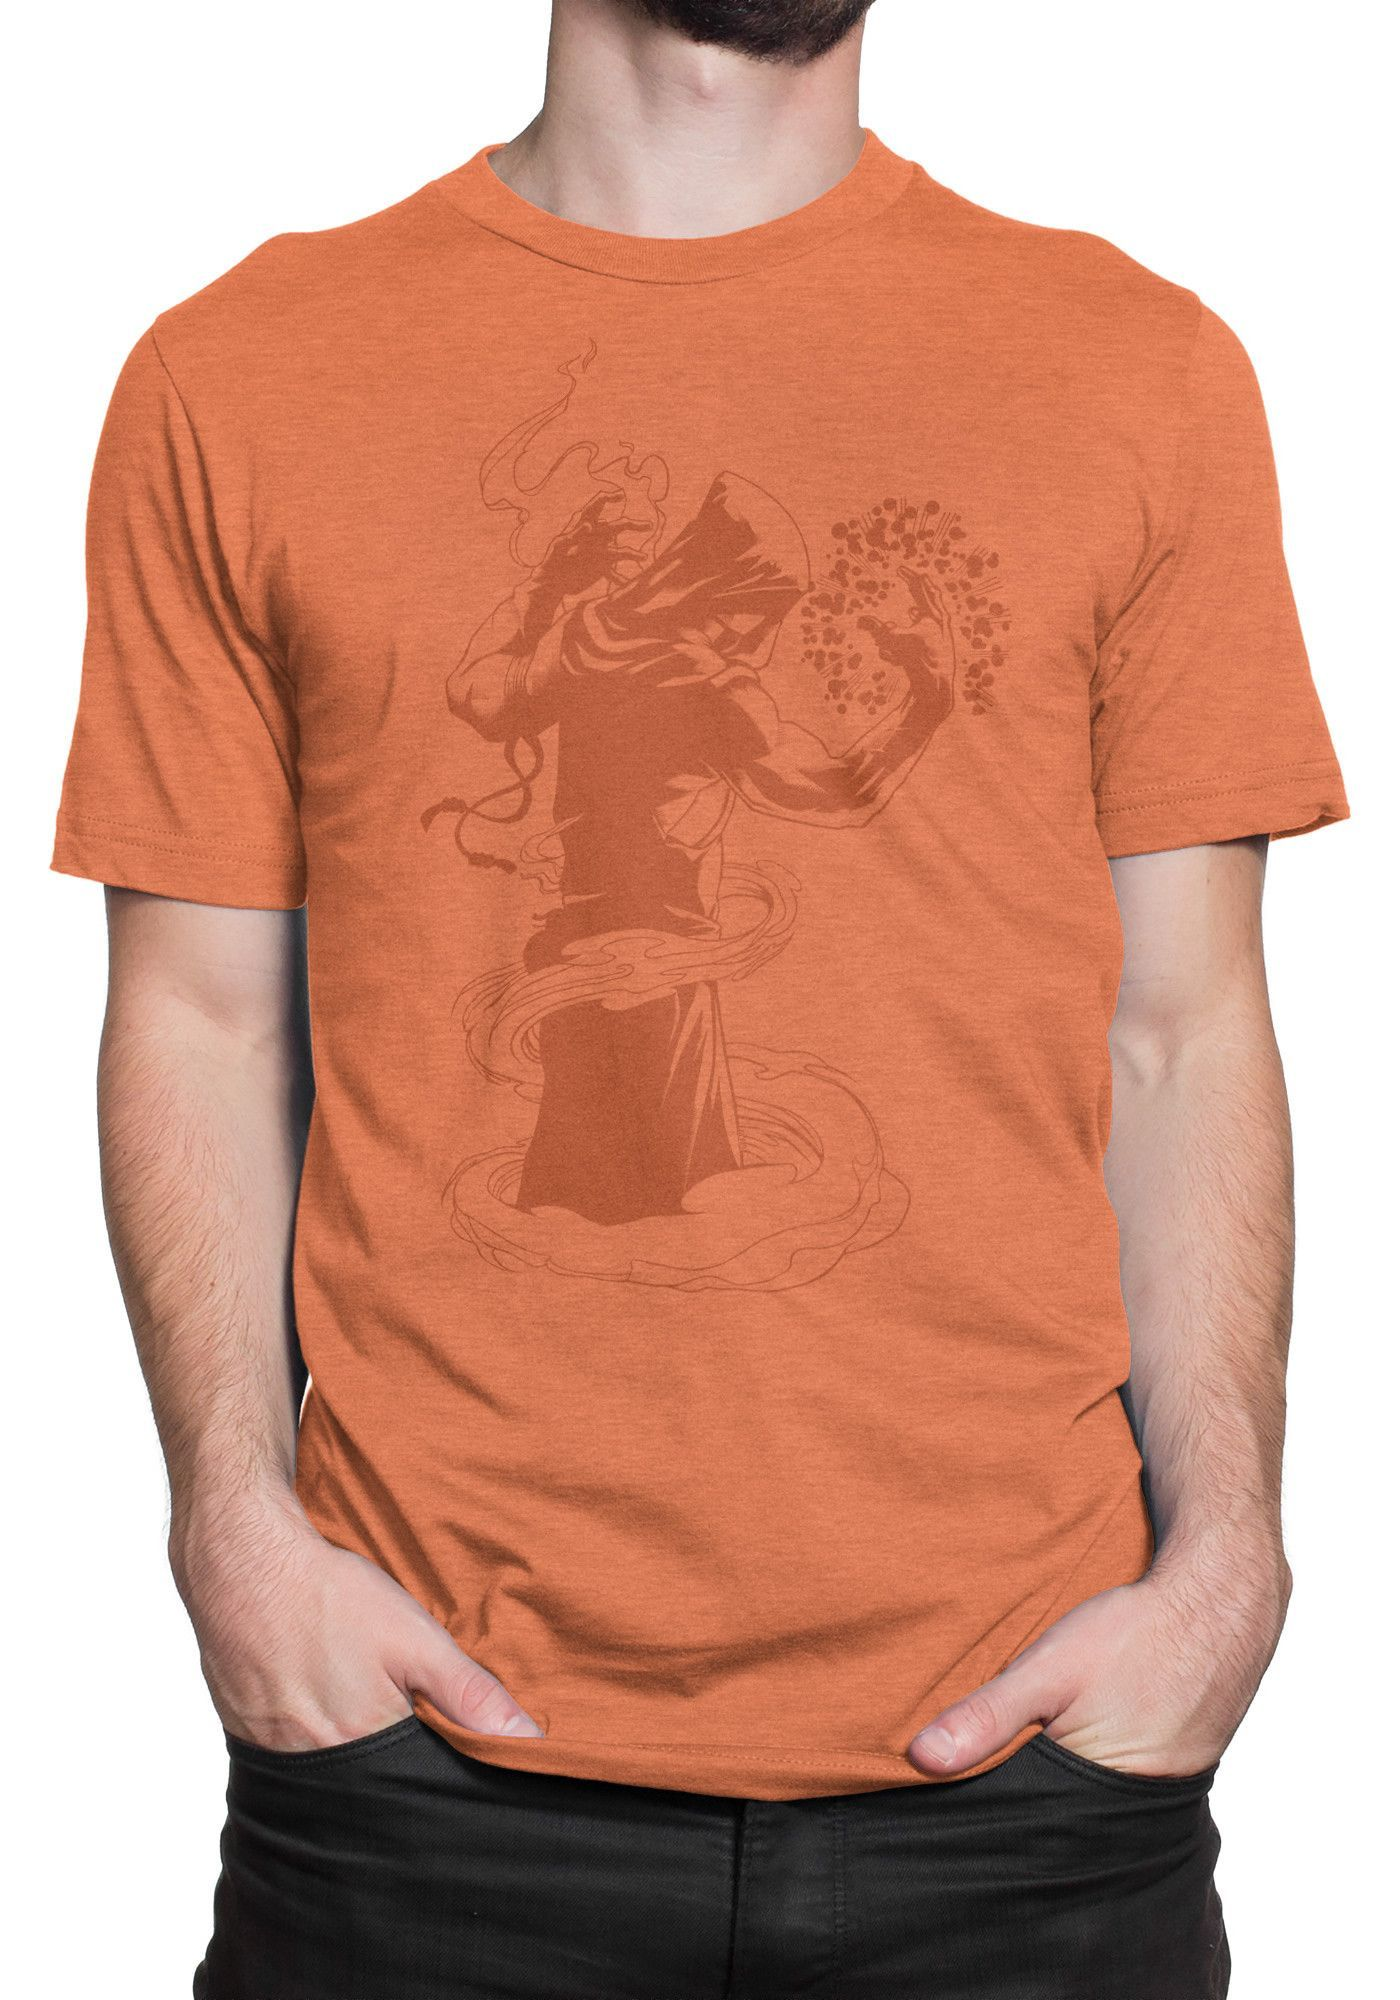 Zekliv the Mage Short Sleeve T-Shirt - Orange